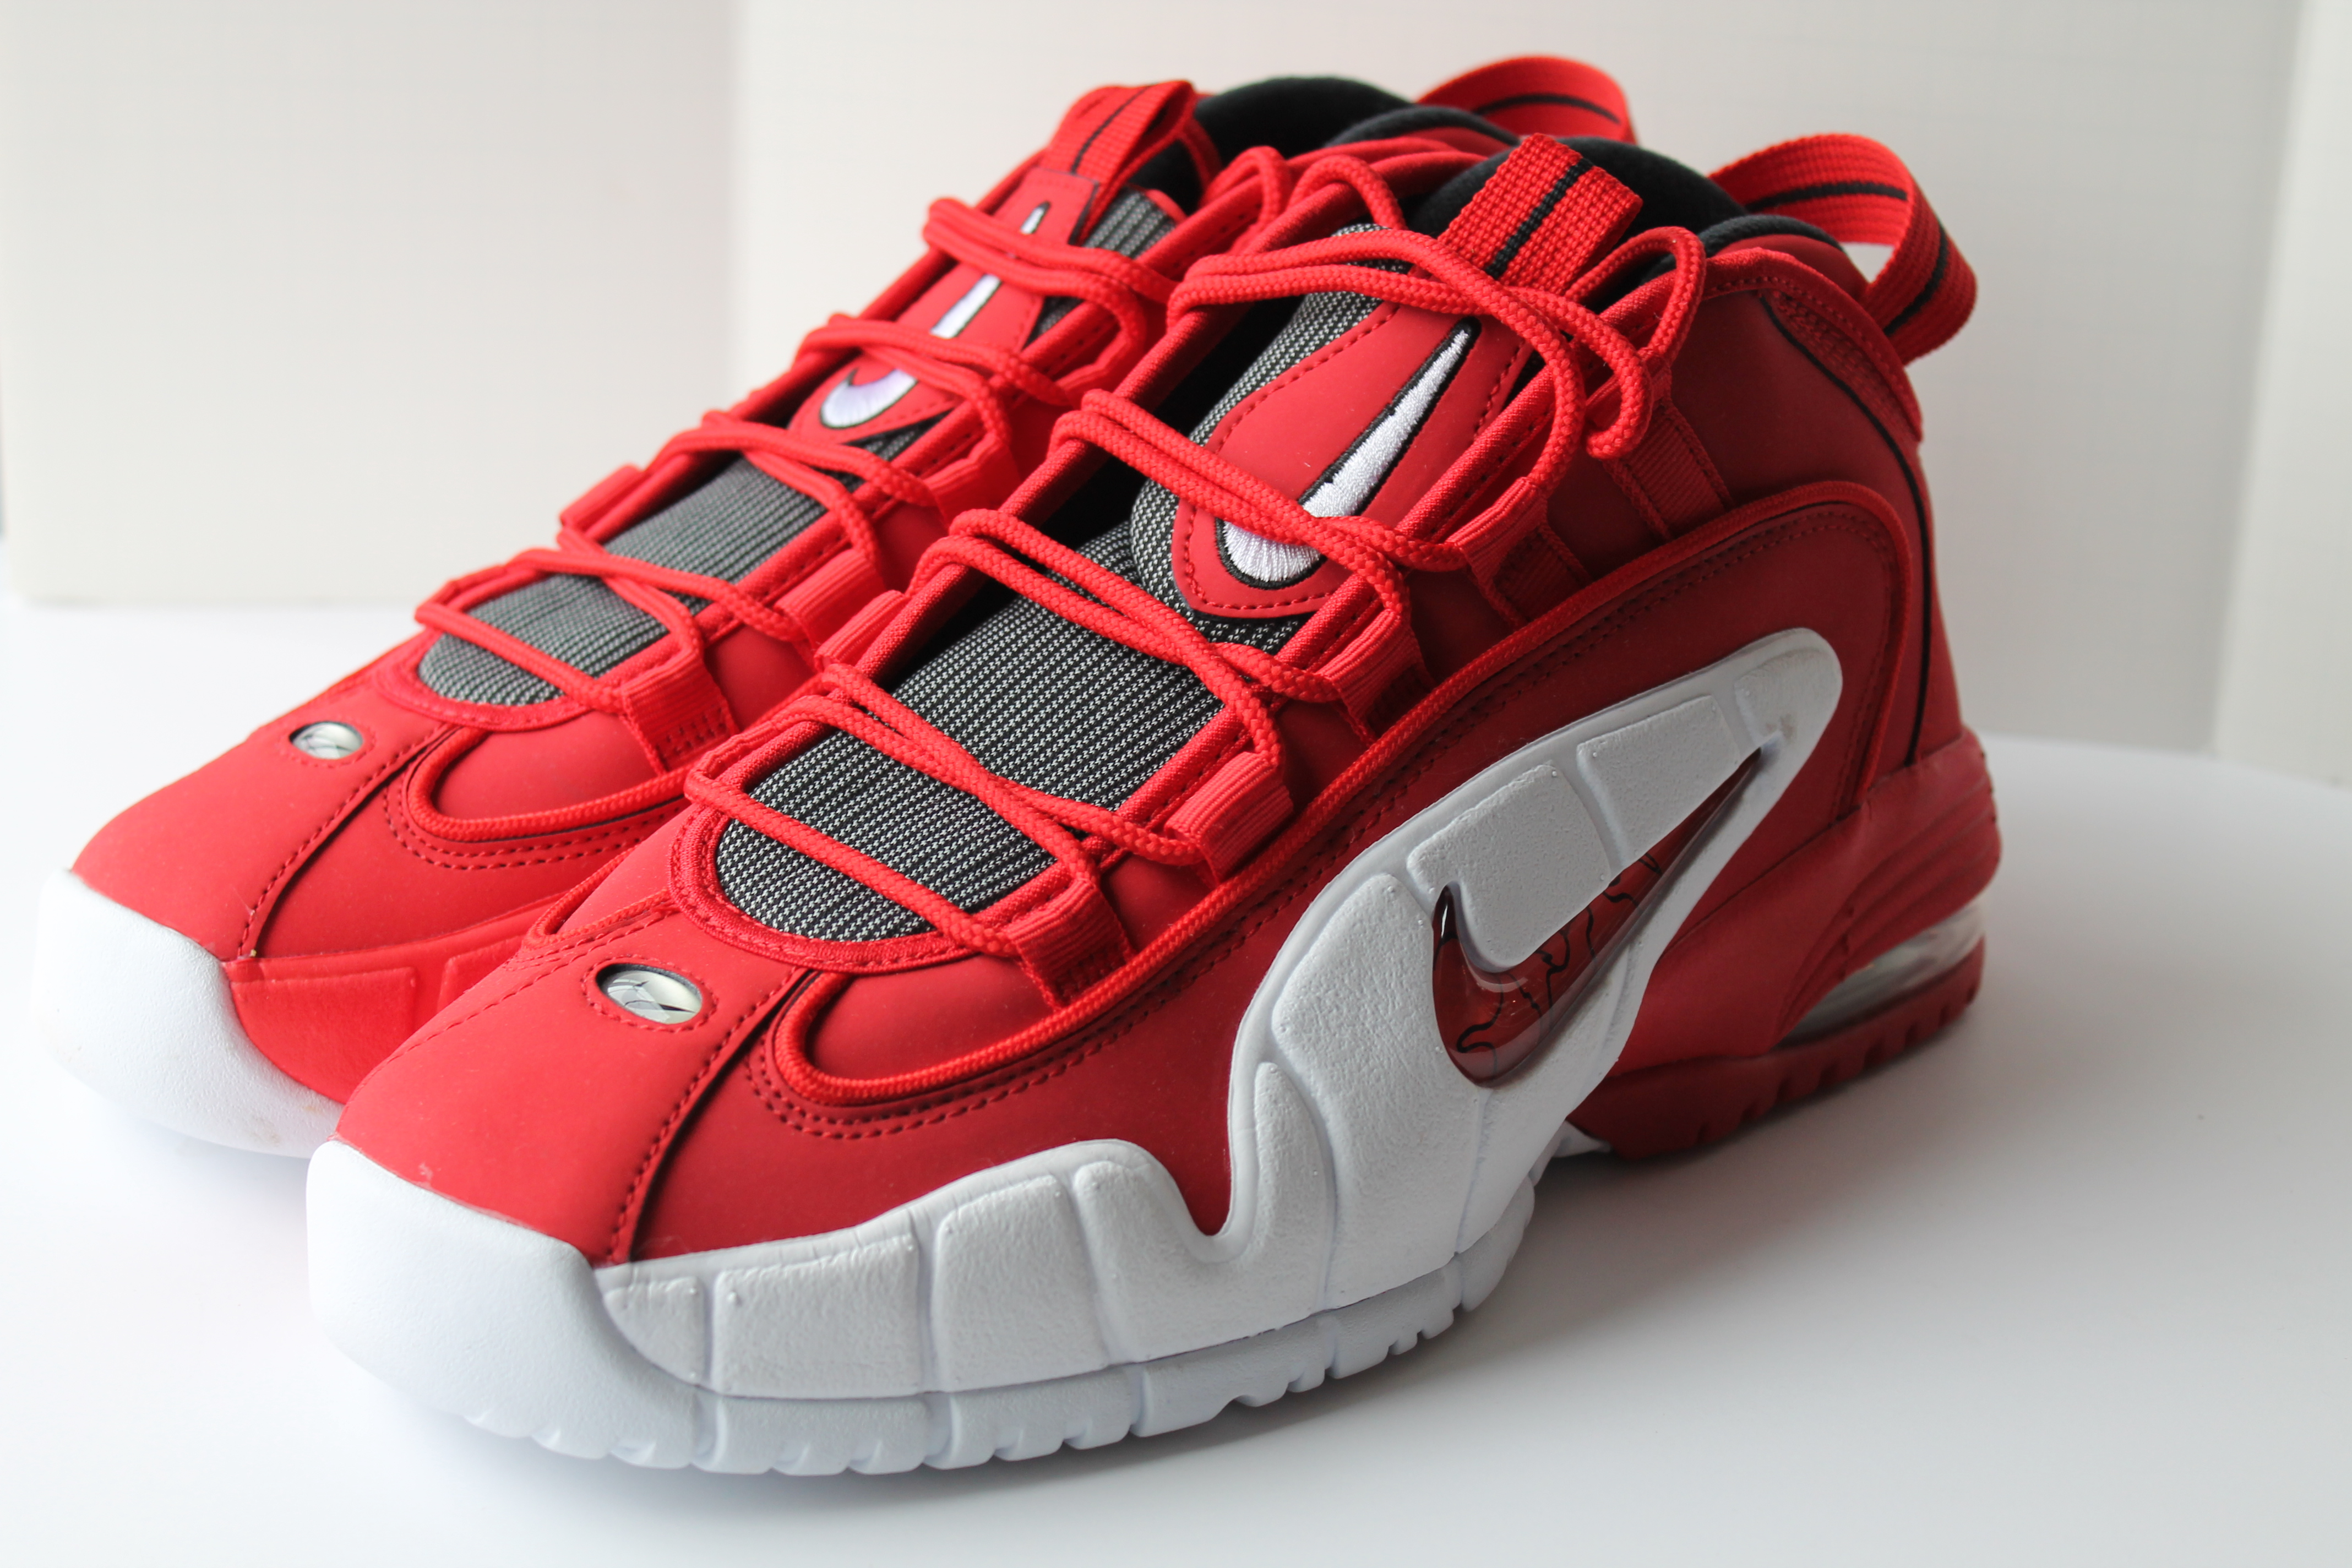 reputable site 07d13 c2de7 Nike Air Max Penny One